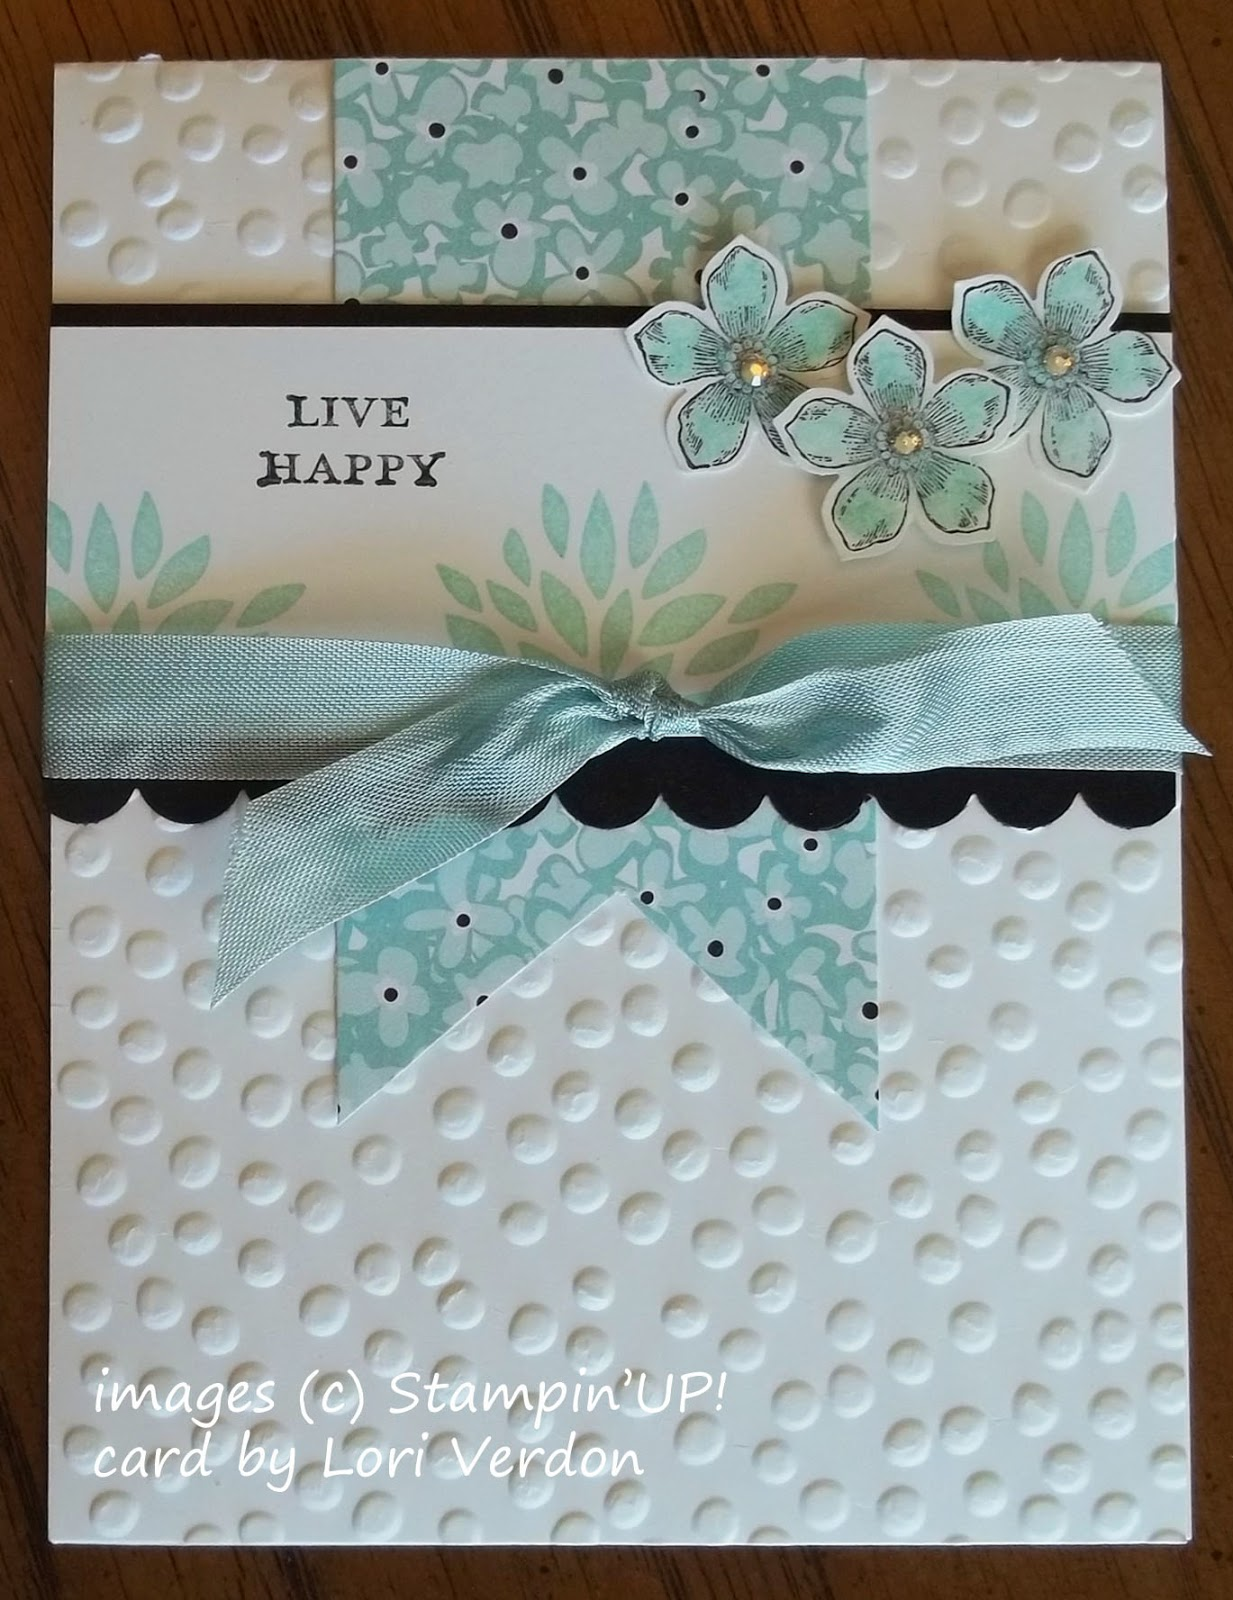 Card made with Stampin'UP! Sale-a-bration products: Decorative Dots Folder, Petal Parade and Petite Petals